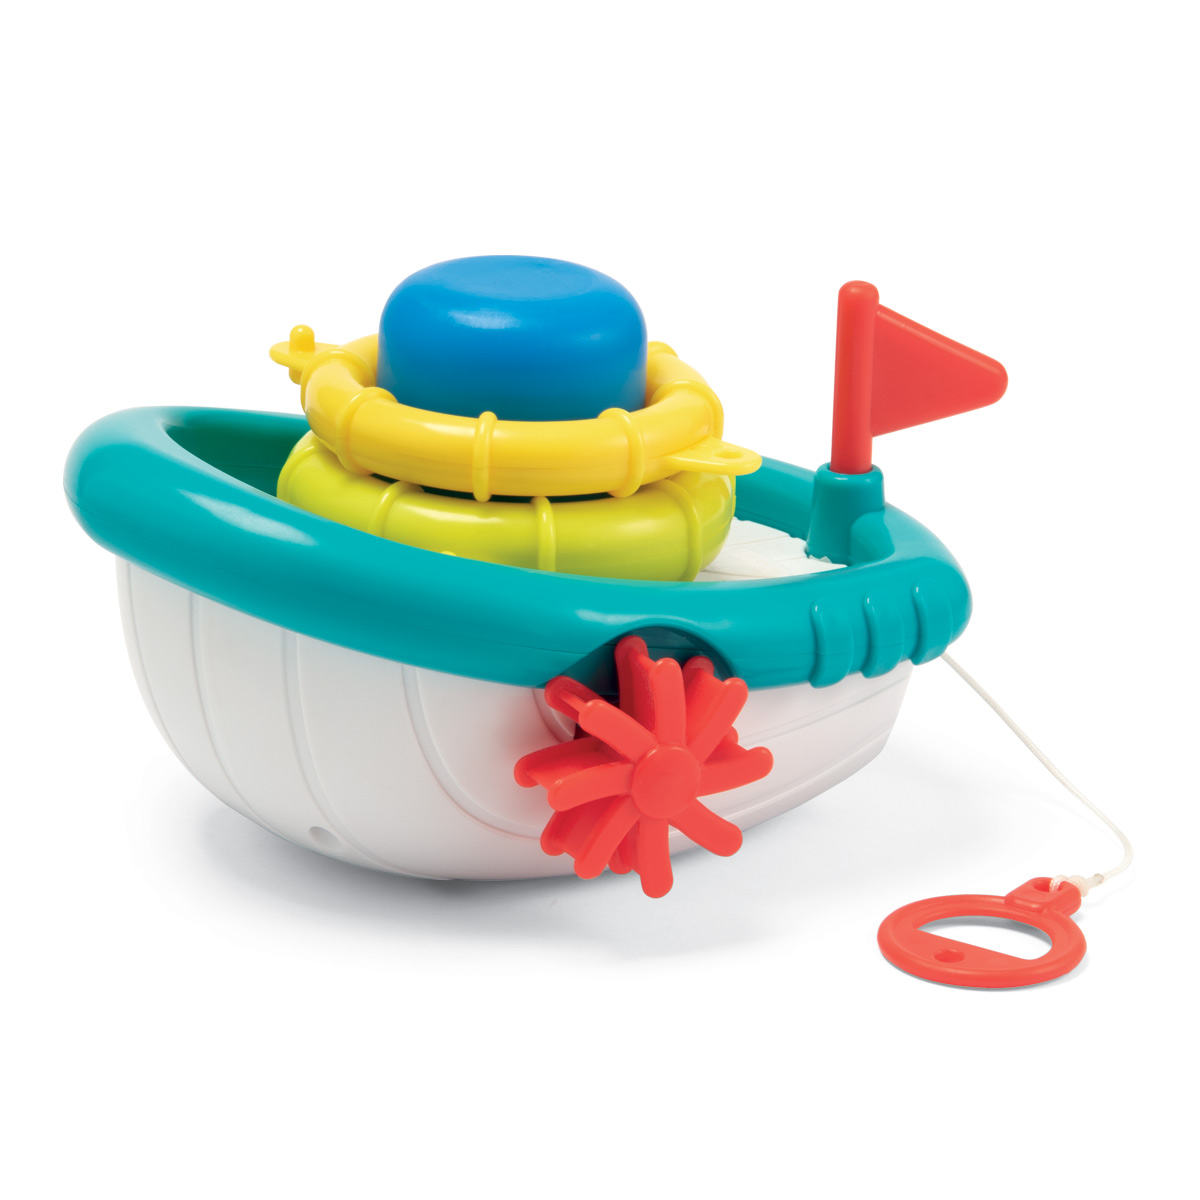 Early Learning Centre Bathtime Pull and Go Tug Boat